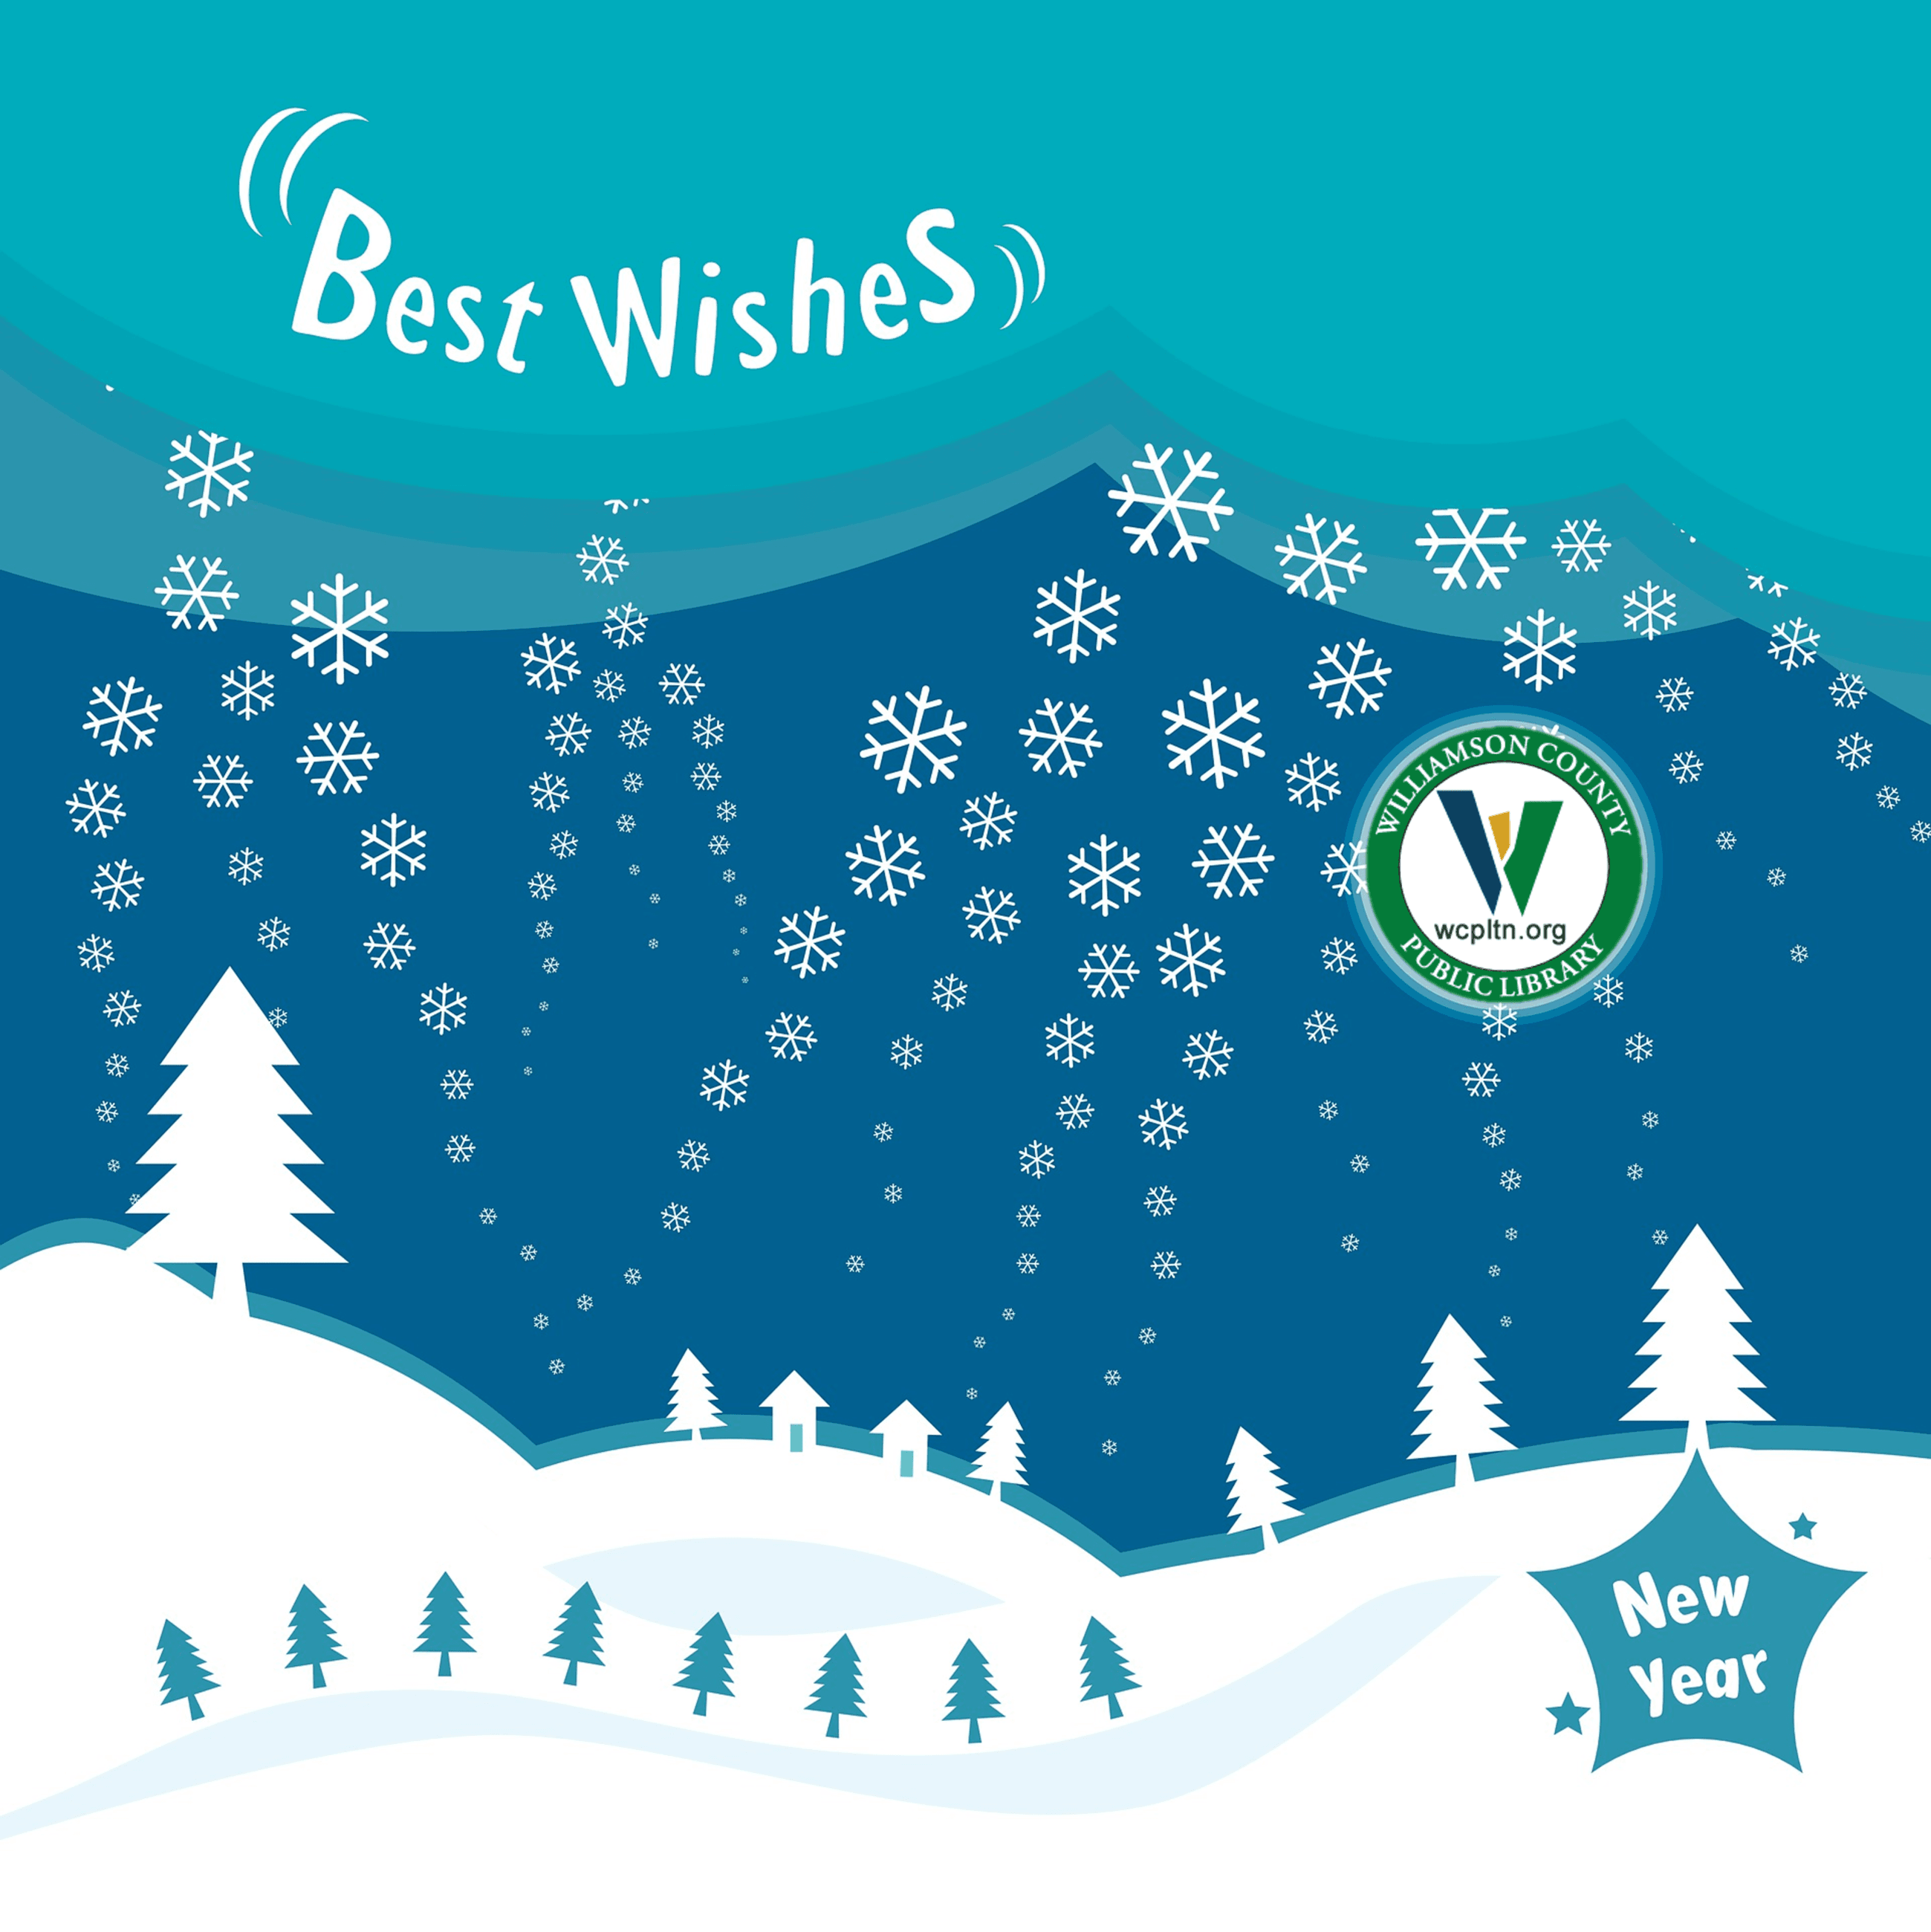 Snowy forest scene with Best Wishes New Year and Library Logo, Williamson County Public Library, wcp